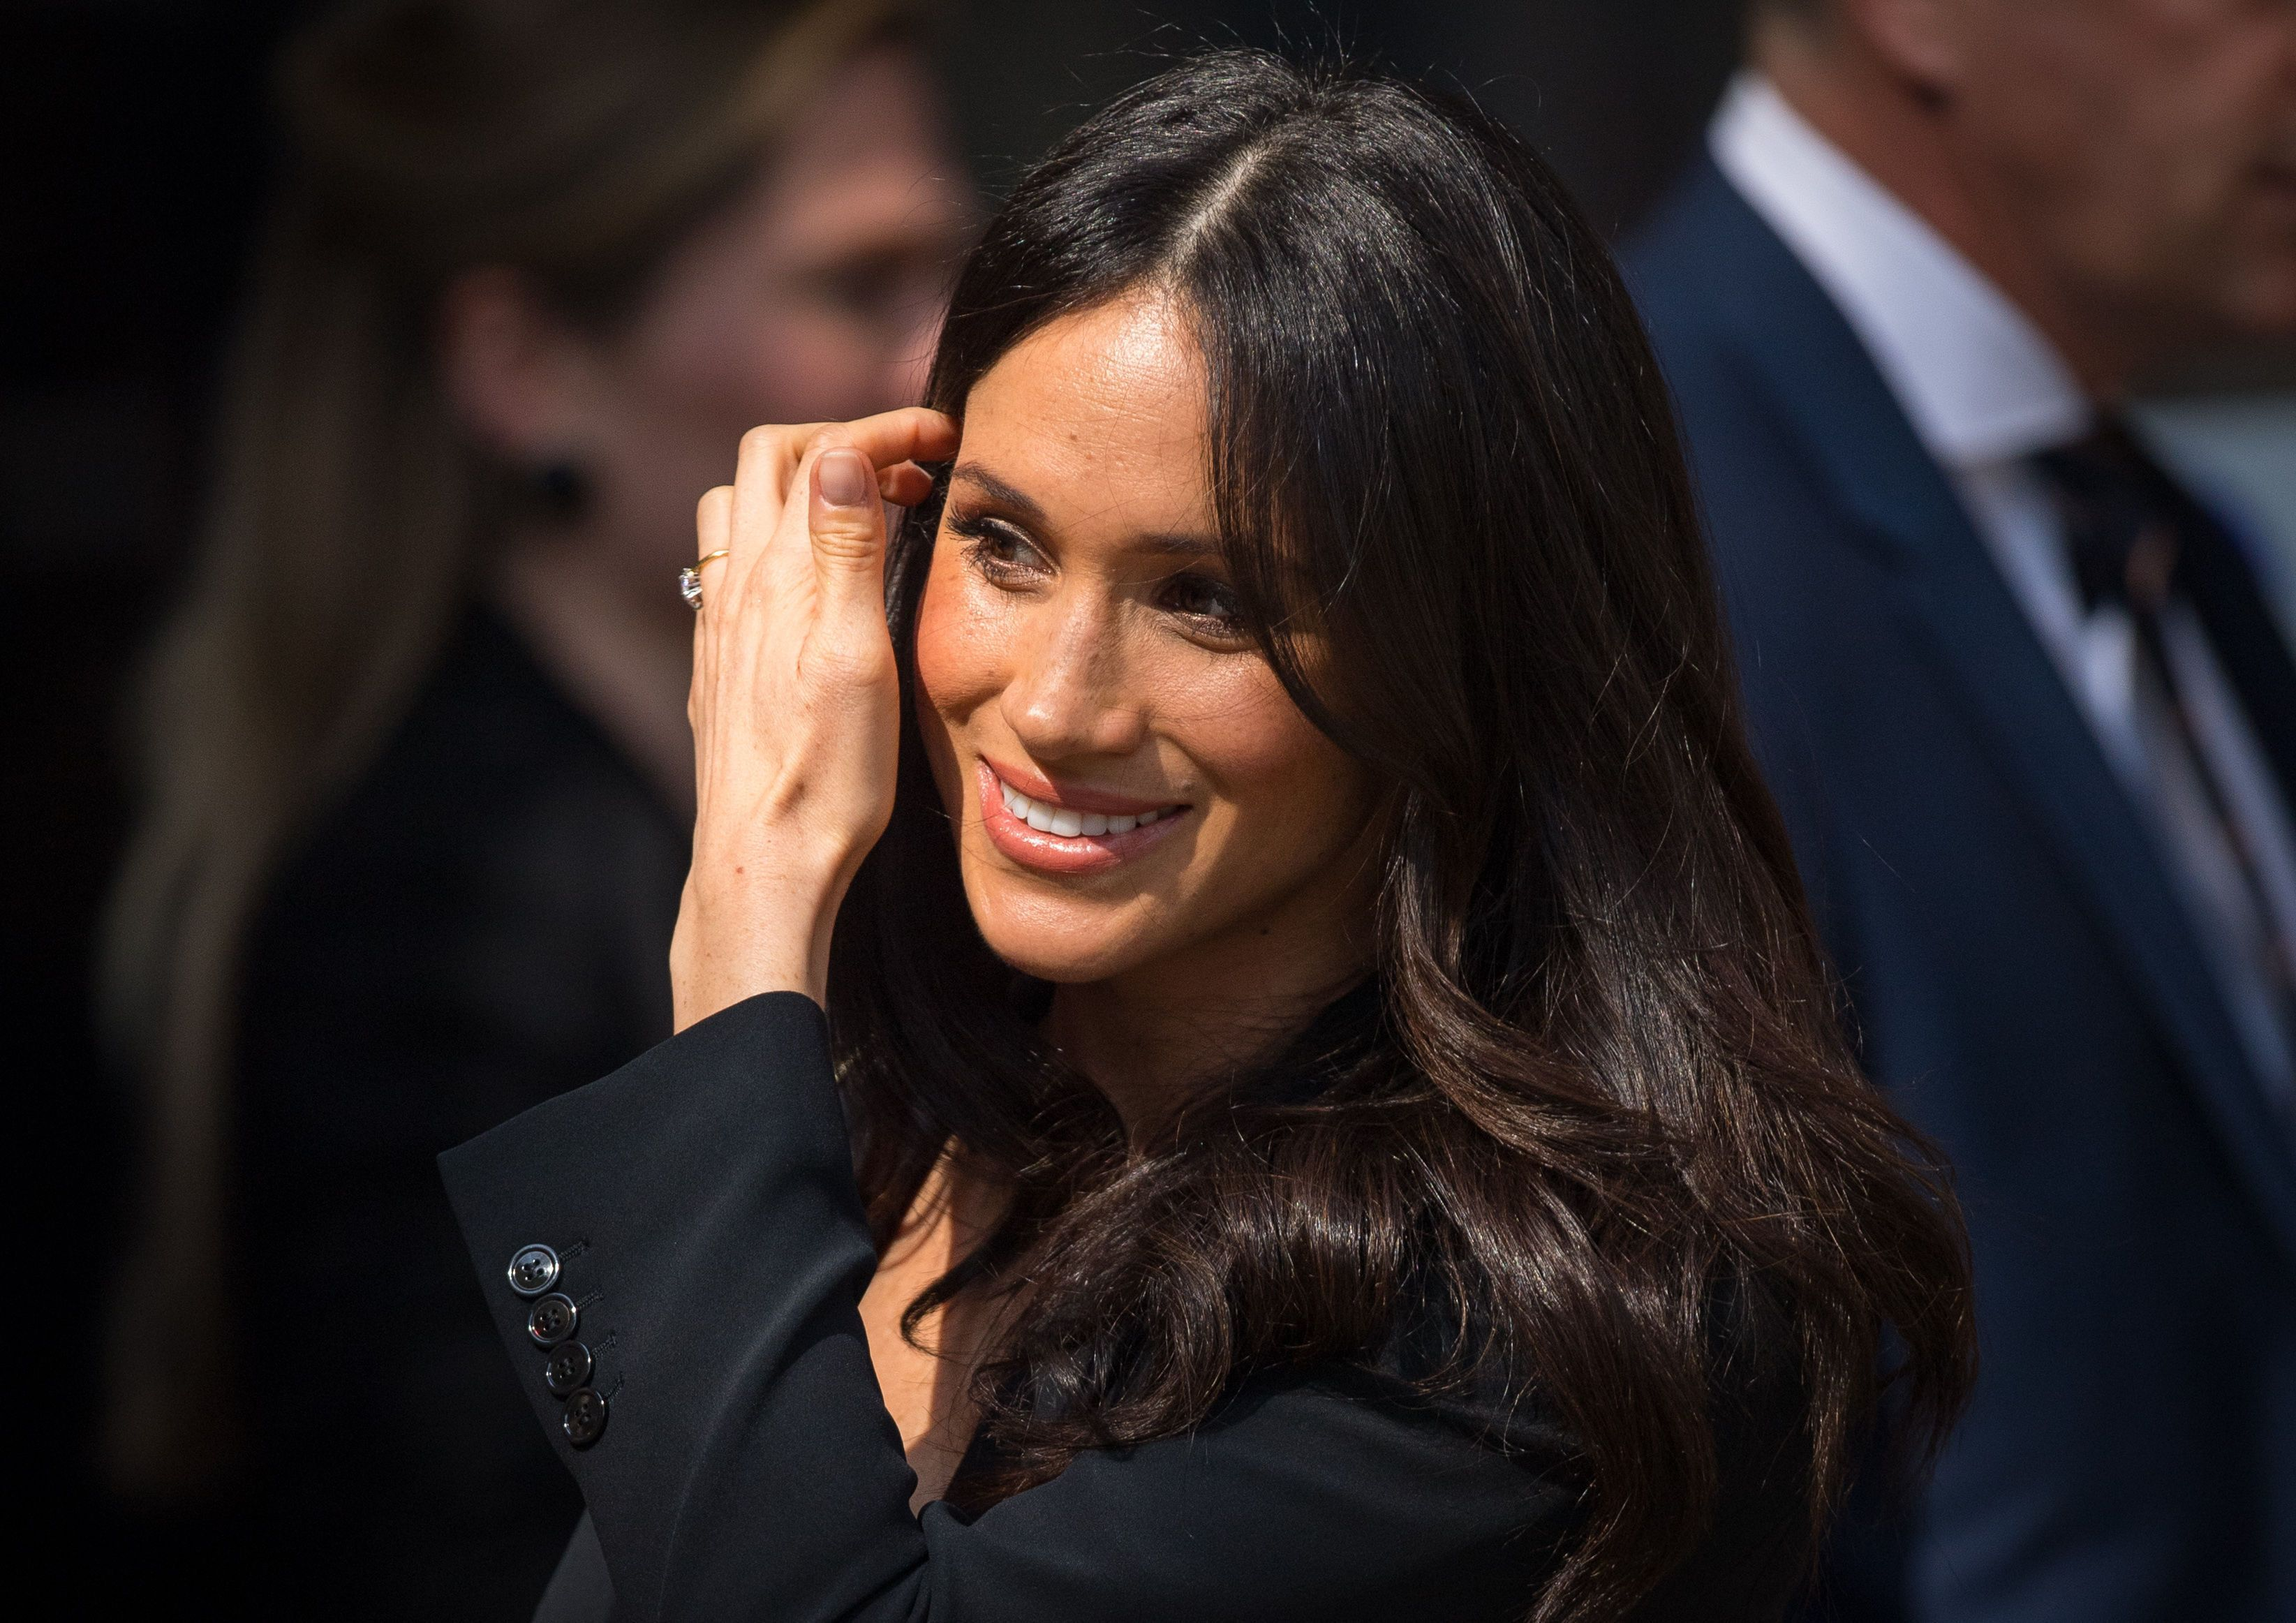 PA Wire  PA Images                   Meghan Markle's parents are heading to the UK for her wedding on May 19